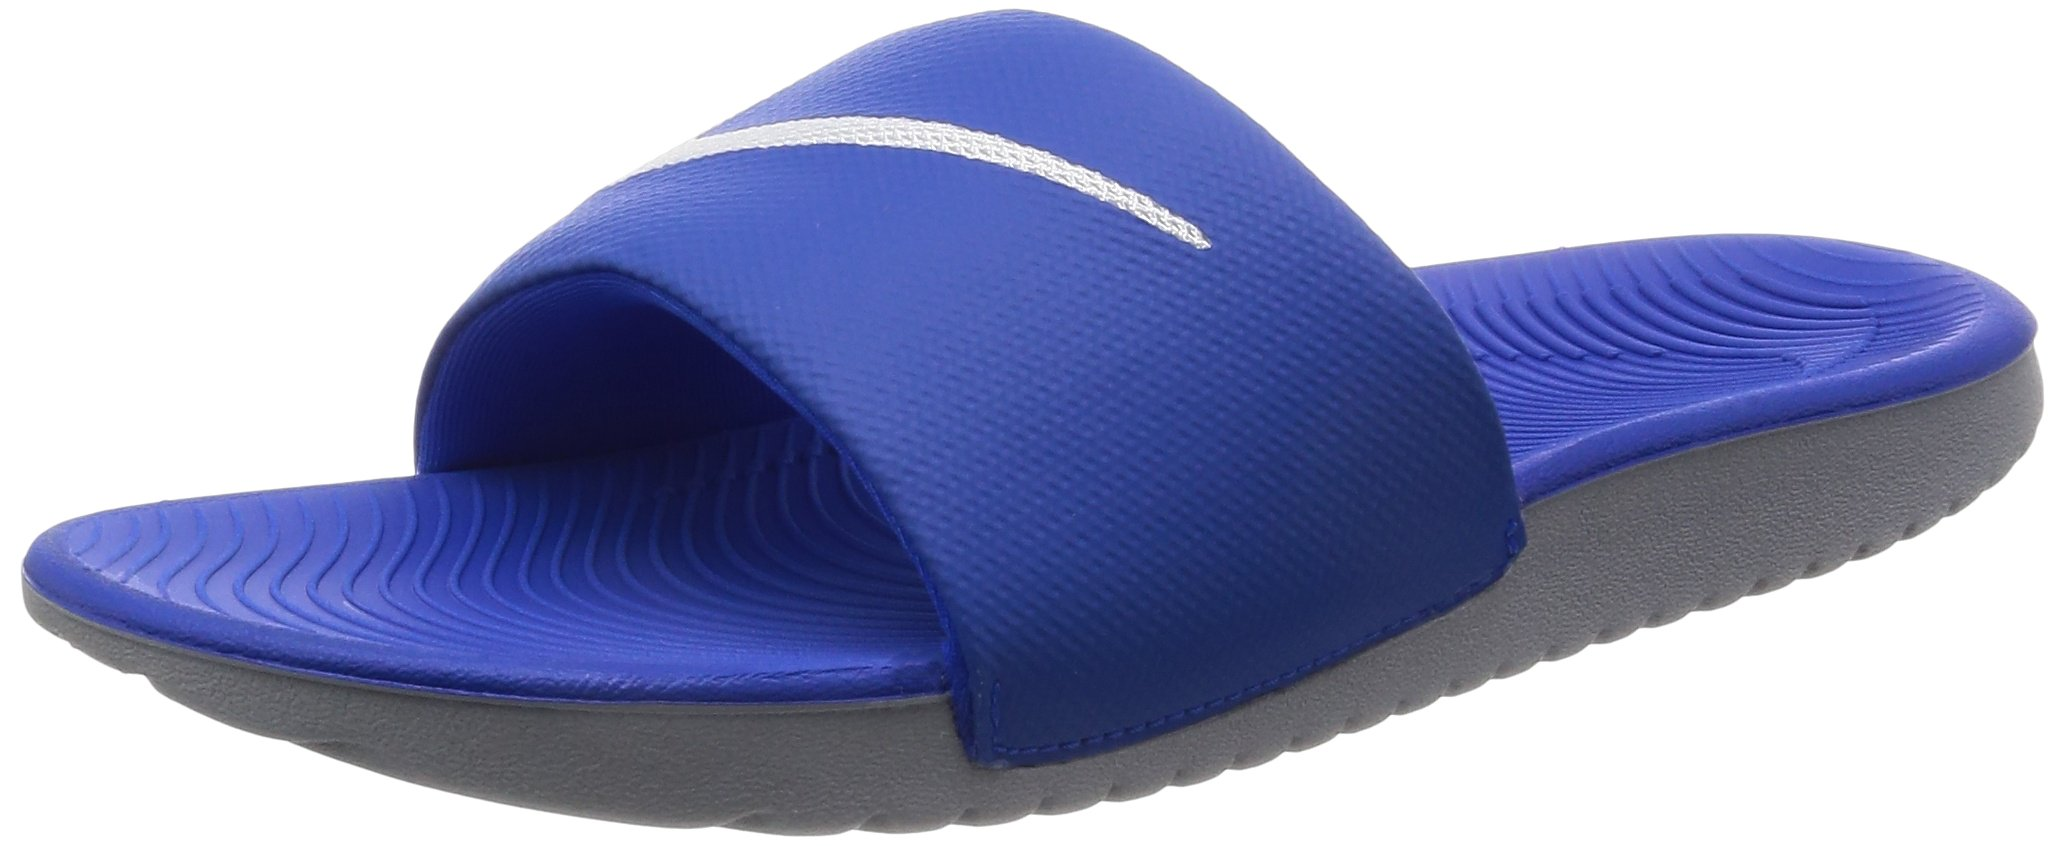 b08ebc39d2c8 Galleon - NIKE Kids  Kawa Slide Sandal